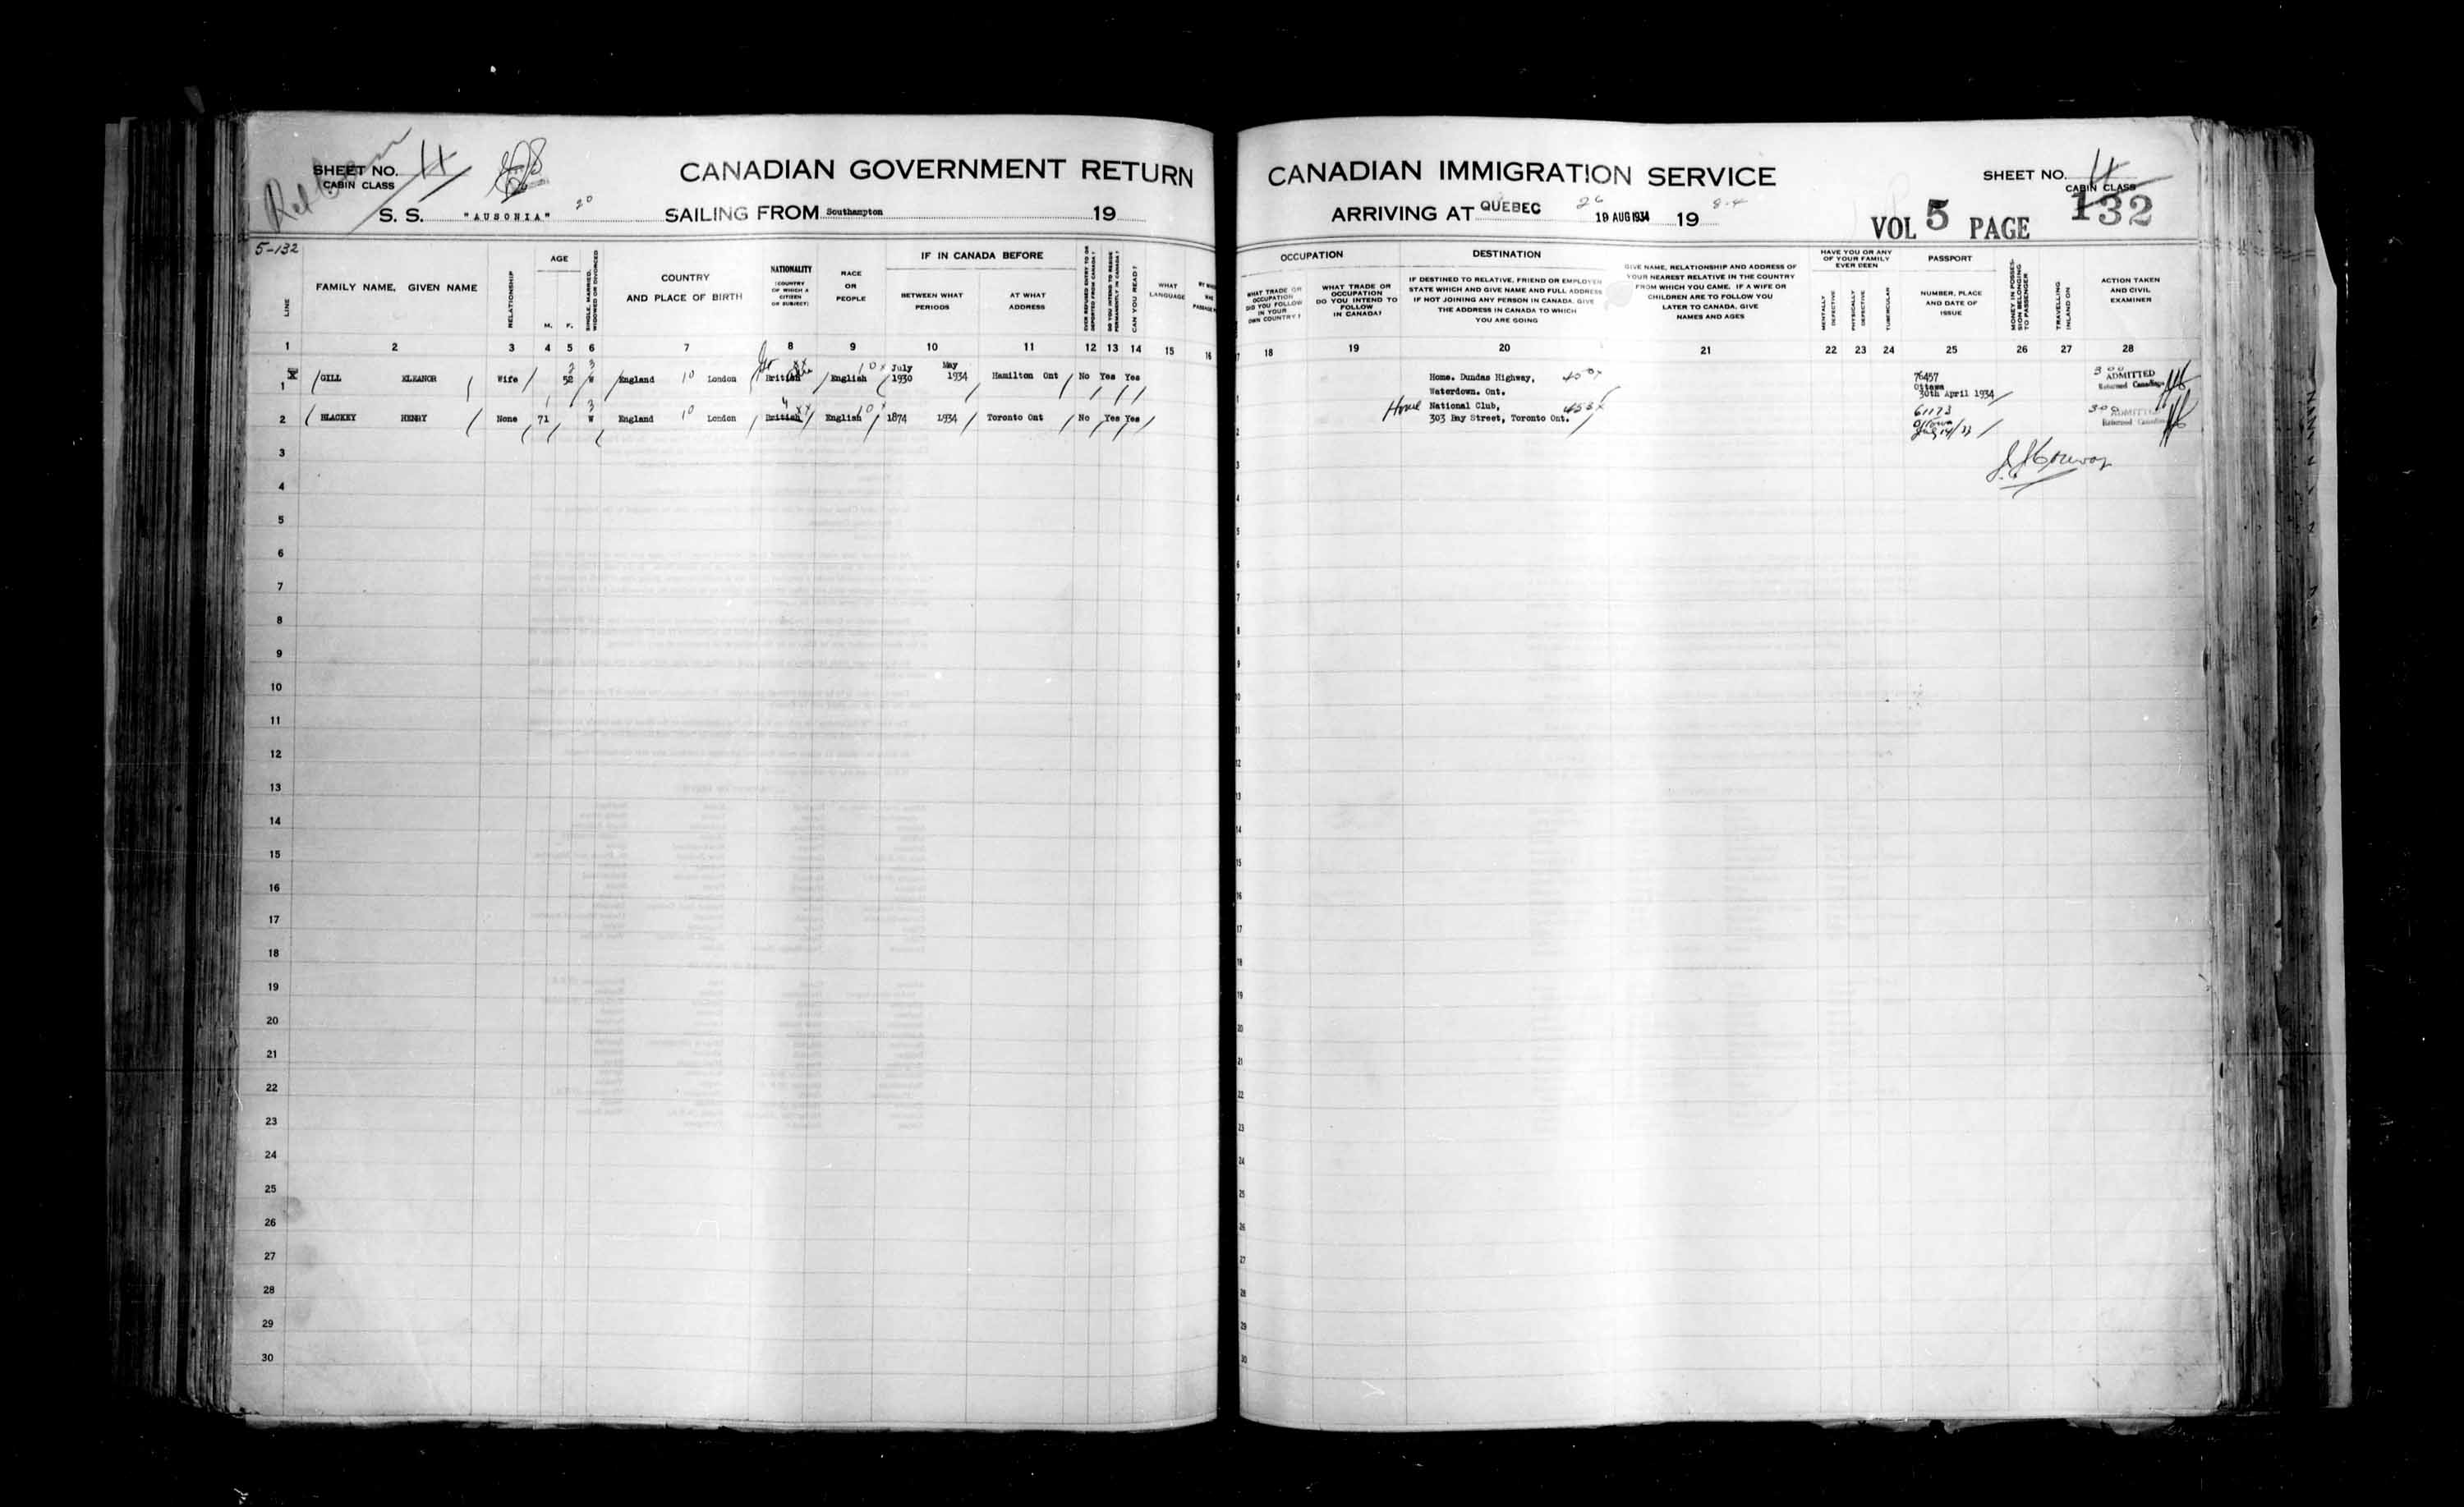 Title: Passenger Lists: Quebec City (1925-1935) - Mikan Number: 134839 - Microform: t-14788